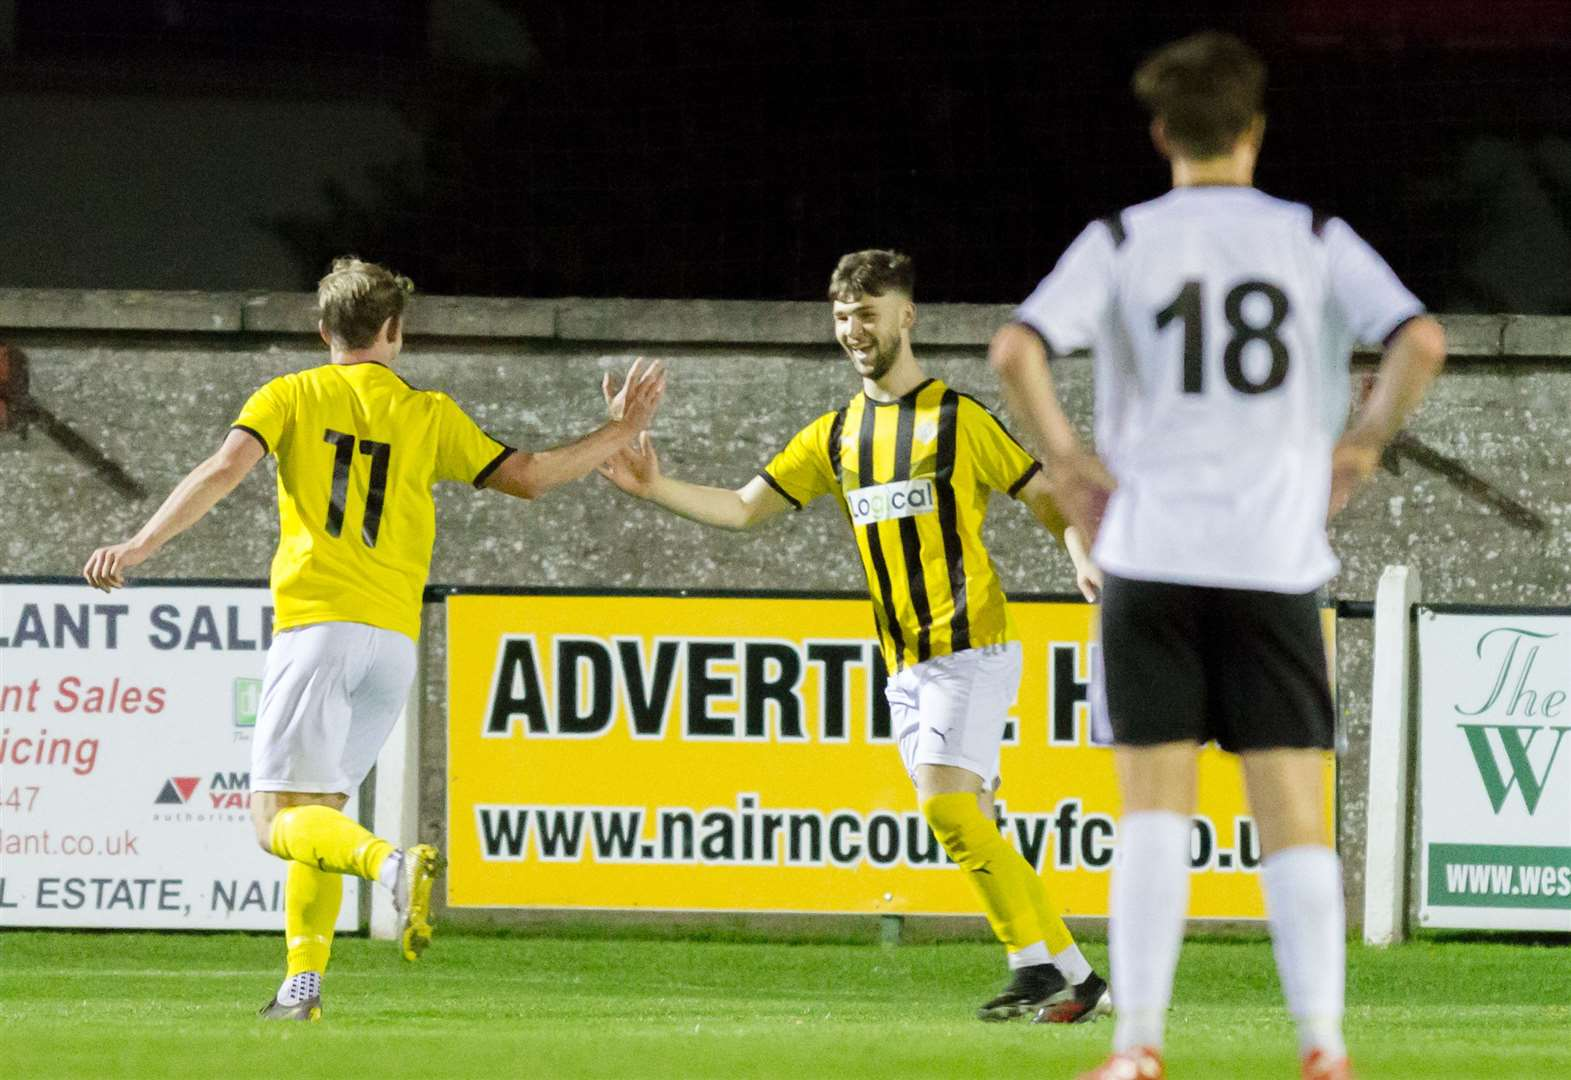 League more important for Nairn County